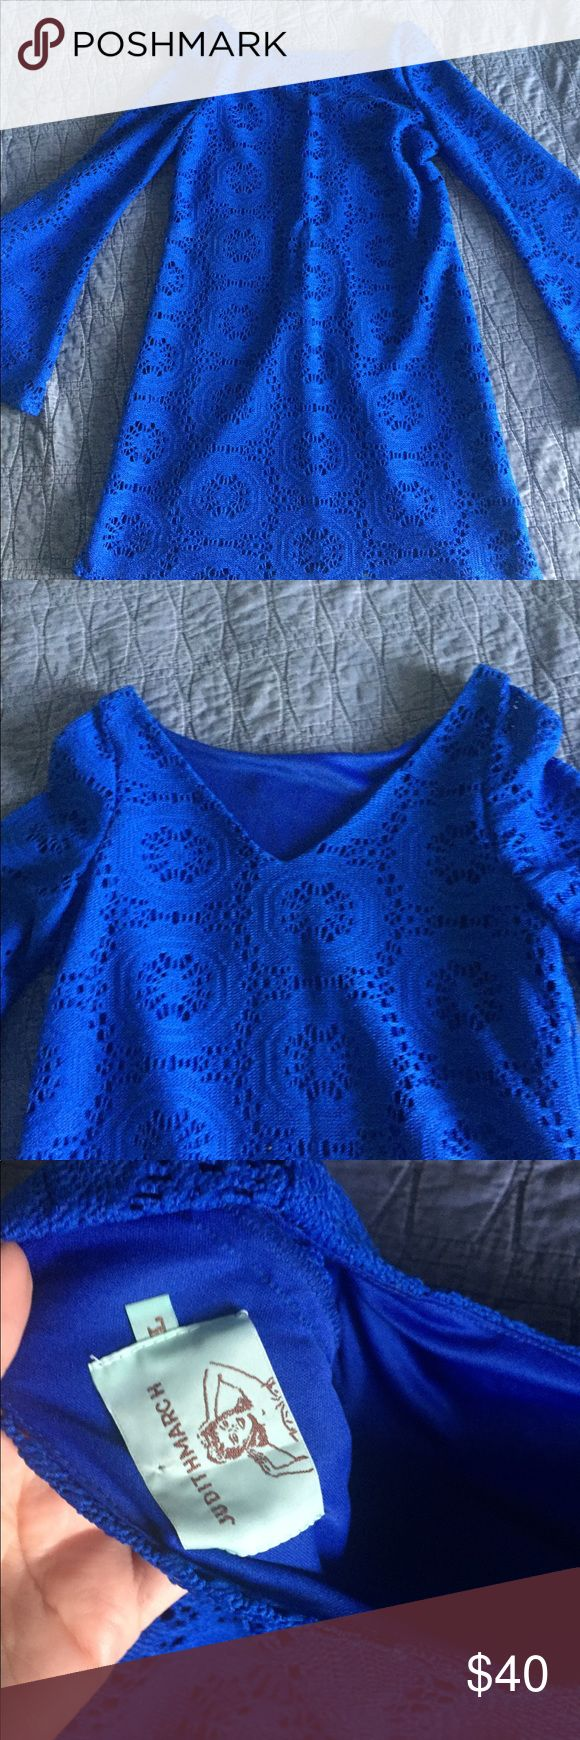 Judith March Dress Blue crochet overlay dress with bell sleeves Judith March Dresses